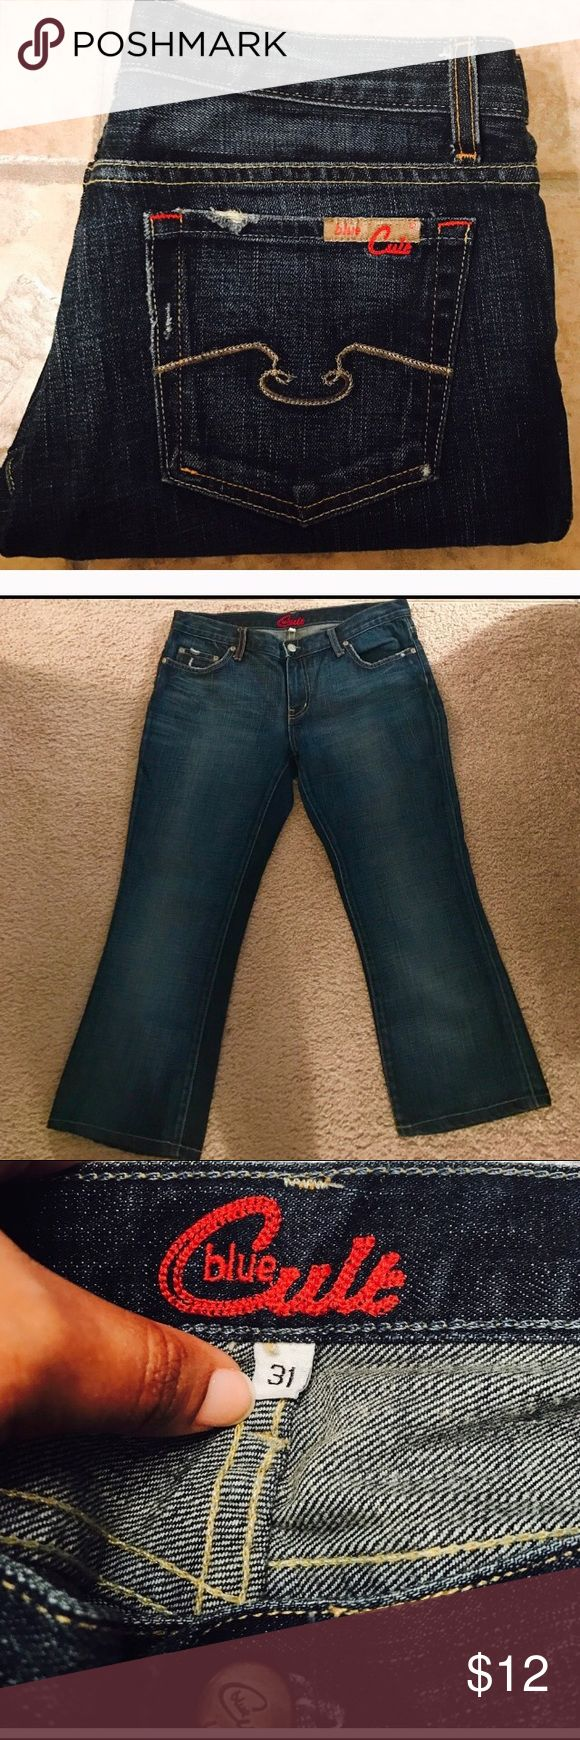 Blue Cult Women's Cropped Jeans Blue Cult size 31 inch waist. blue cult Jeans Ankle & Cropped